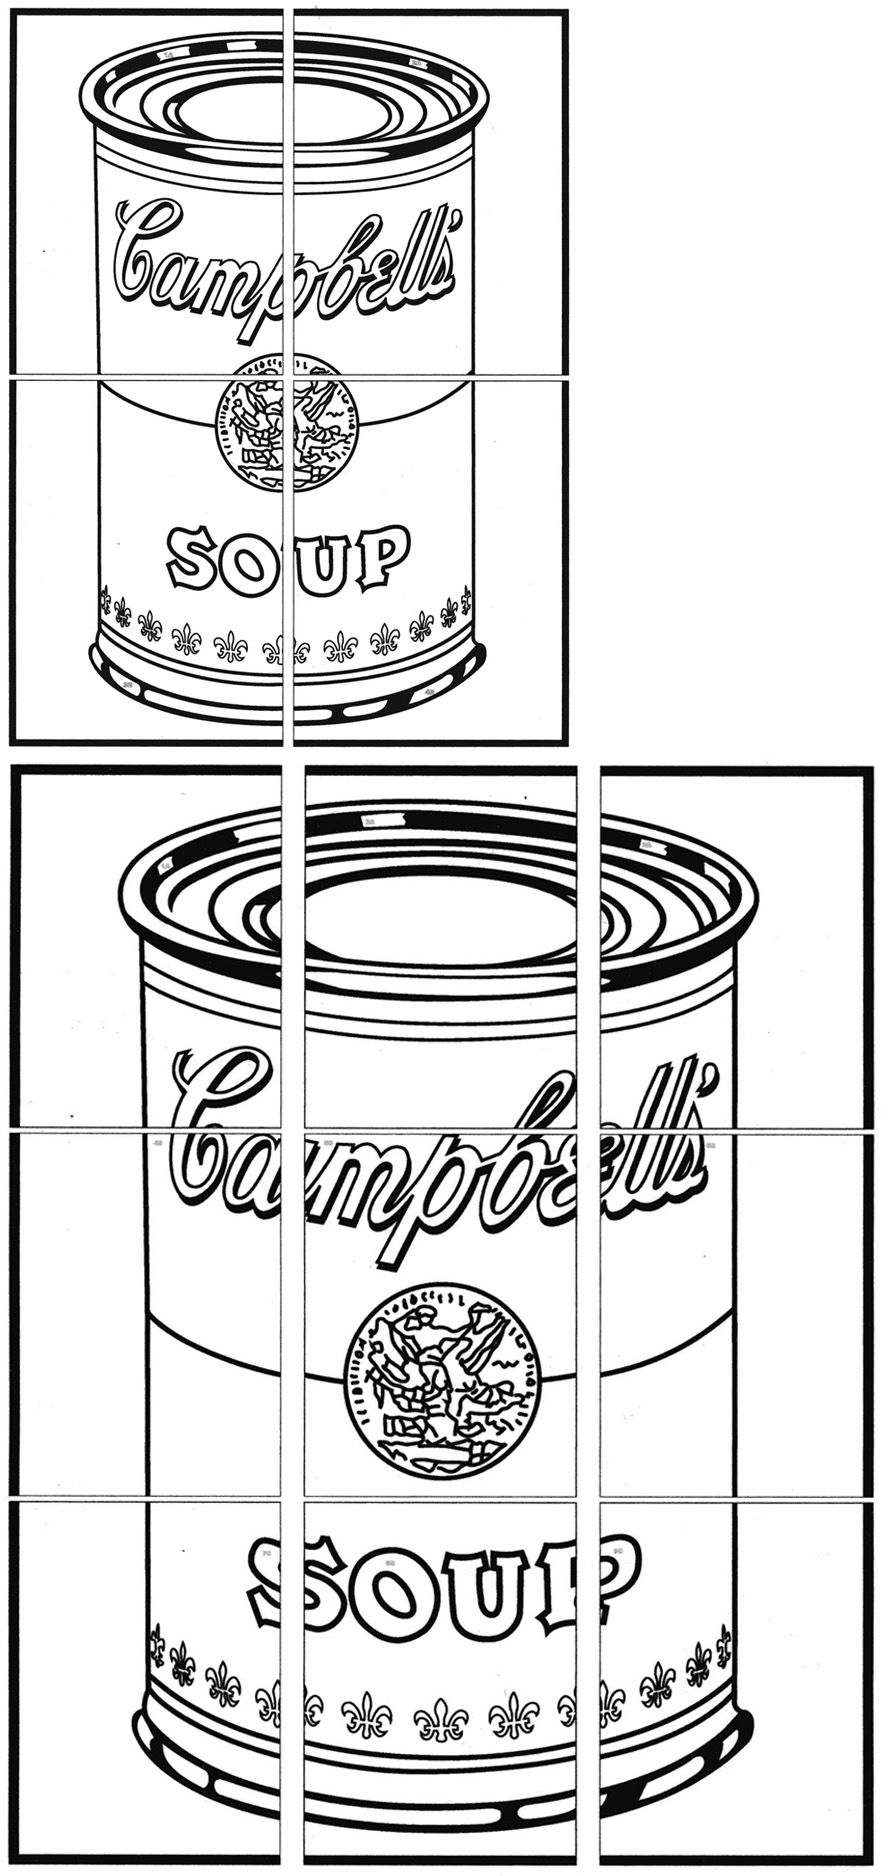 Campbell S Soup Can Art Projects For Kids Andy Warhol Pop Art Pop Art For Kids Warhol Art